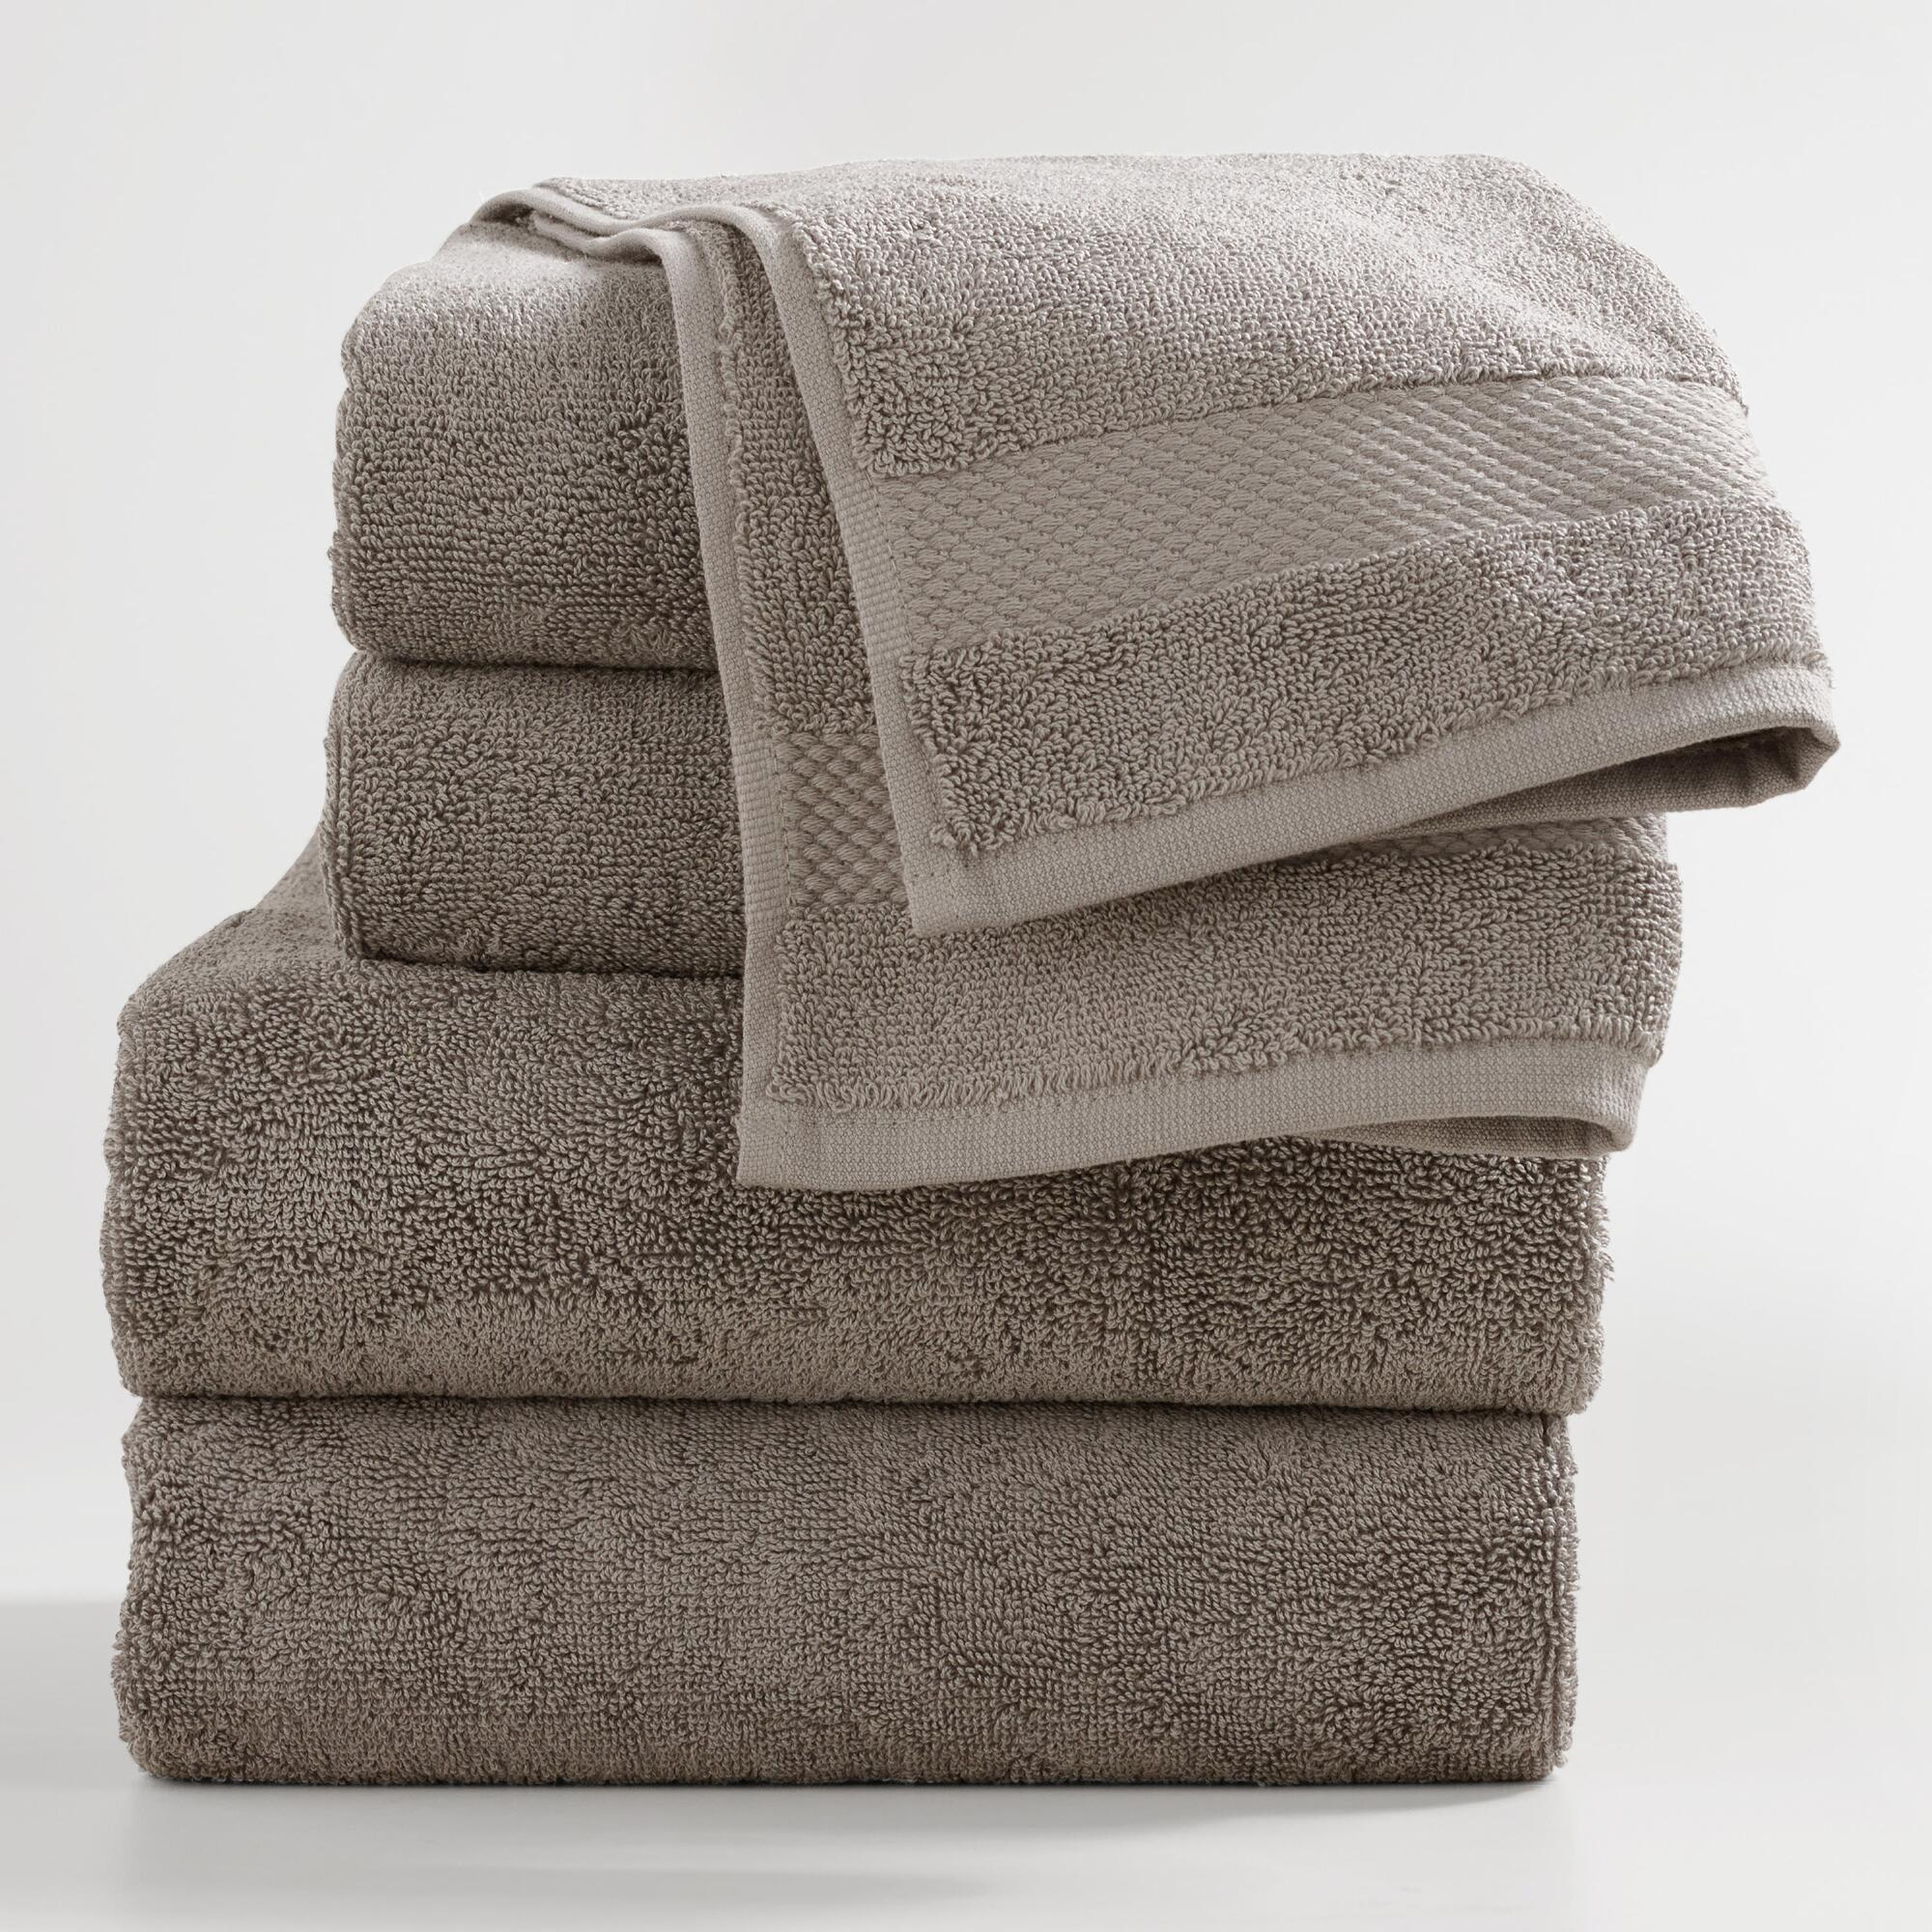 Frost Gray Bath Towel Collection by World Market